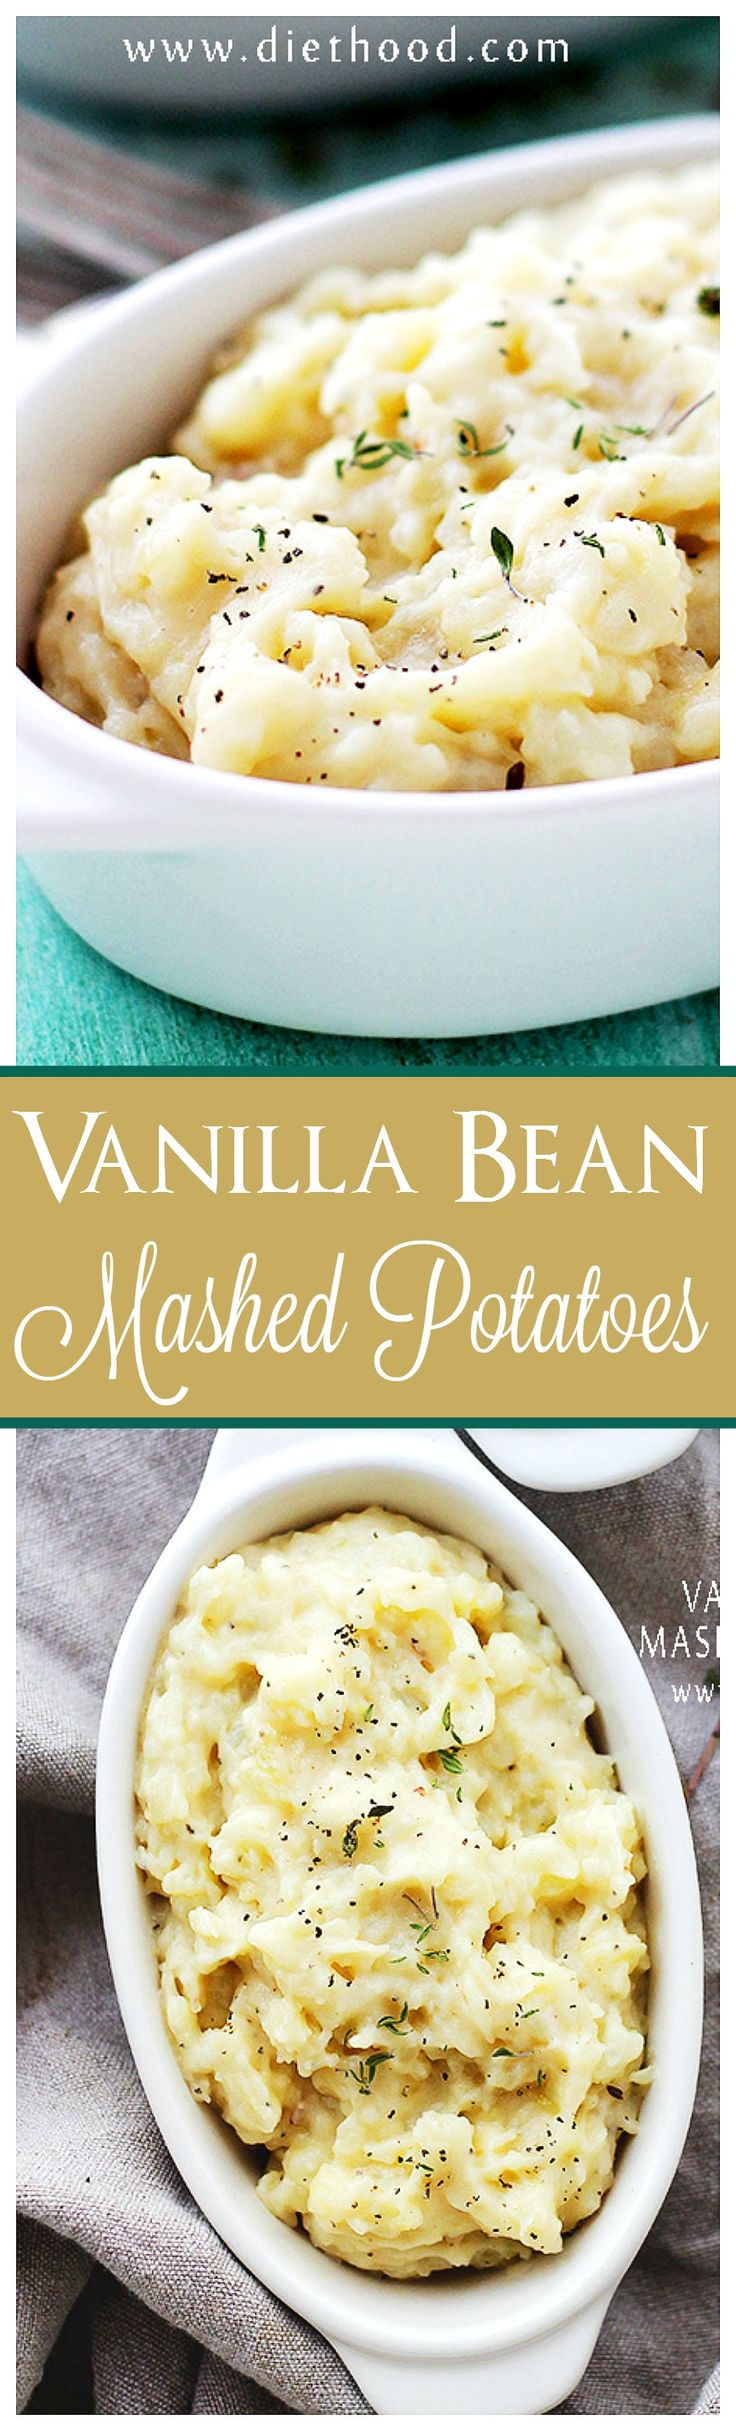 Vanilla Bean Mashed Potatoes – Creamy and delicious mashed potatoes with a fabulous twist! Vanilla adds an amazing flavor to this classic mashed potatoes recipe. Add it to your Thanksgiving menu!